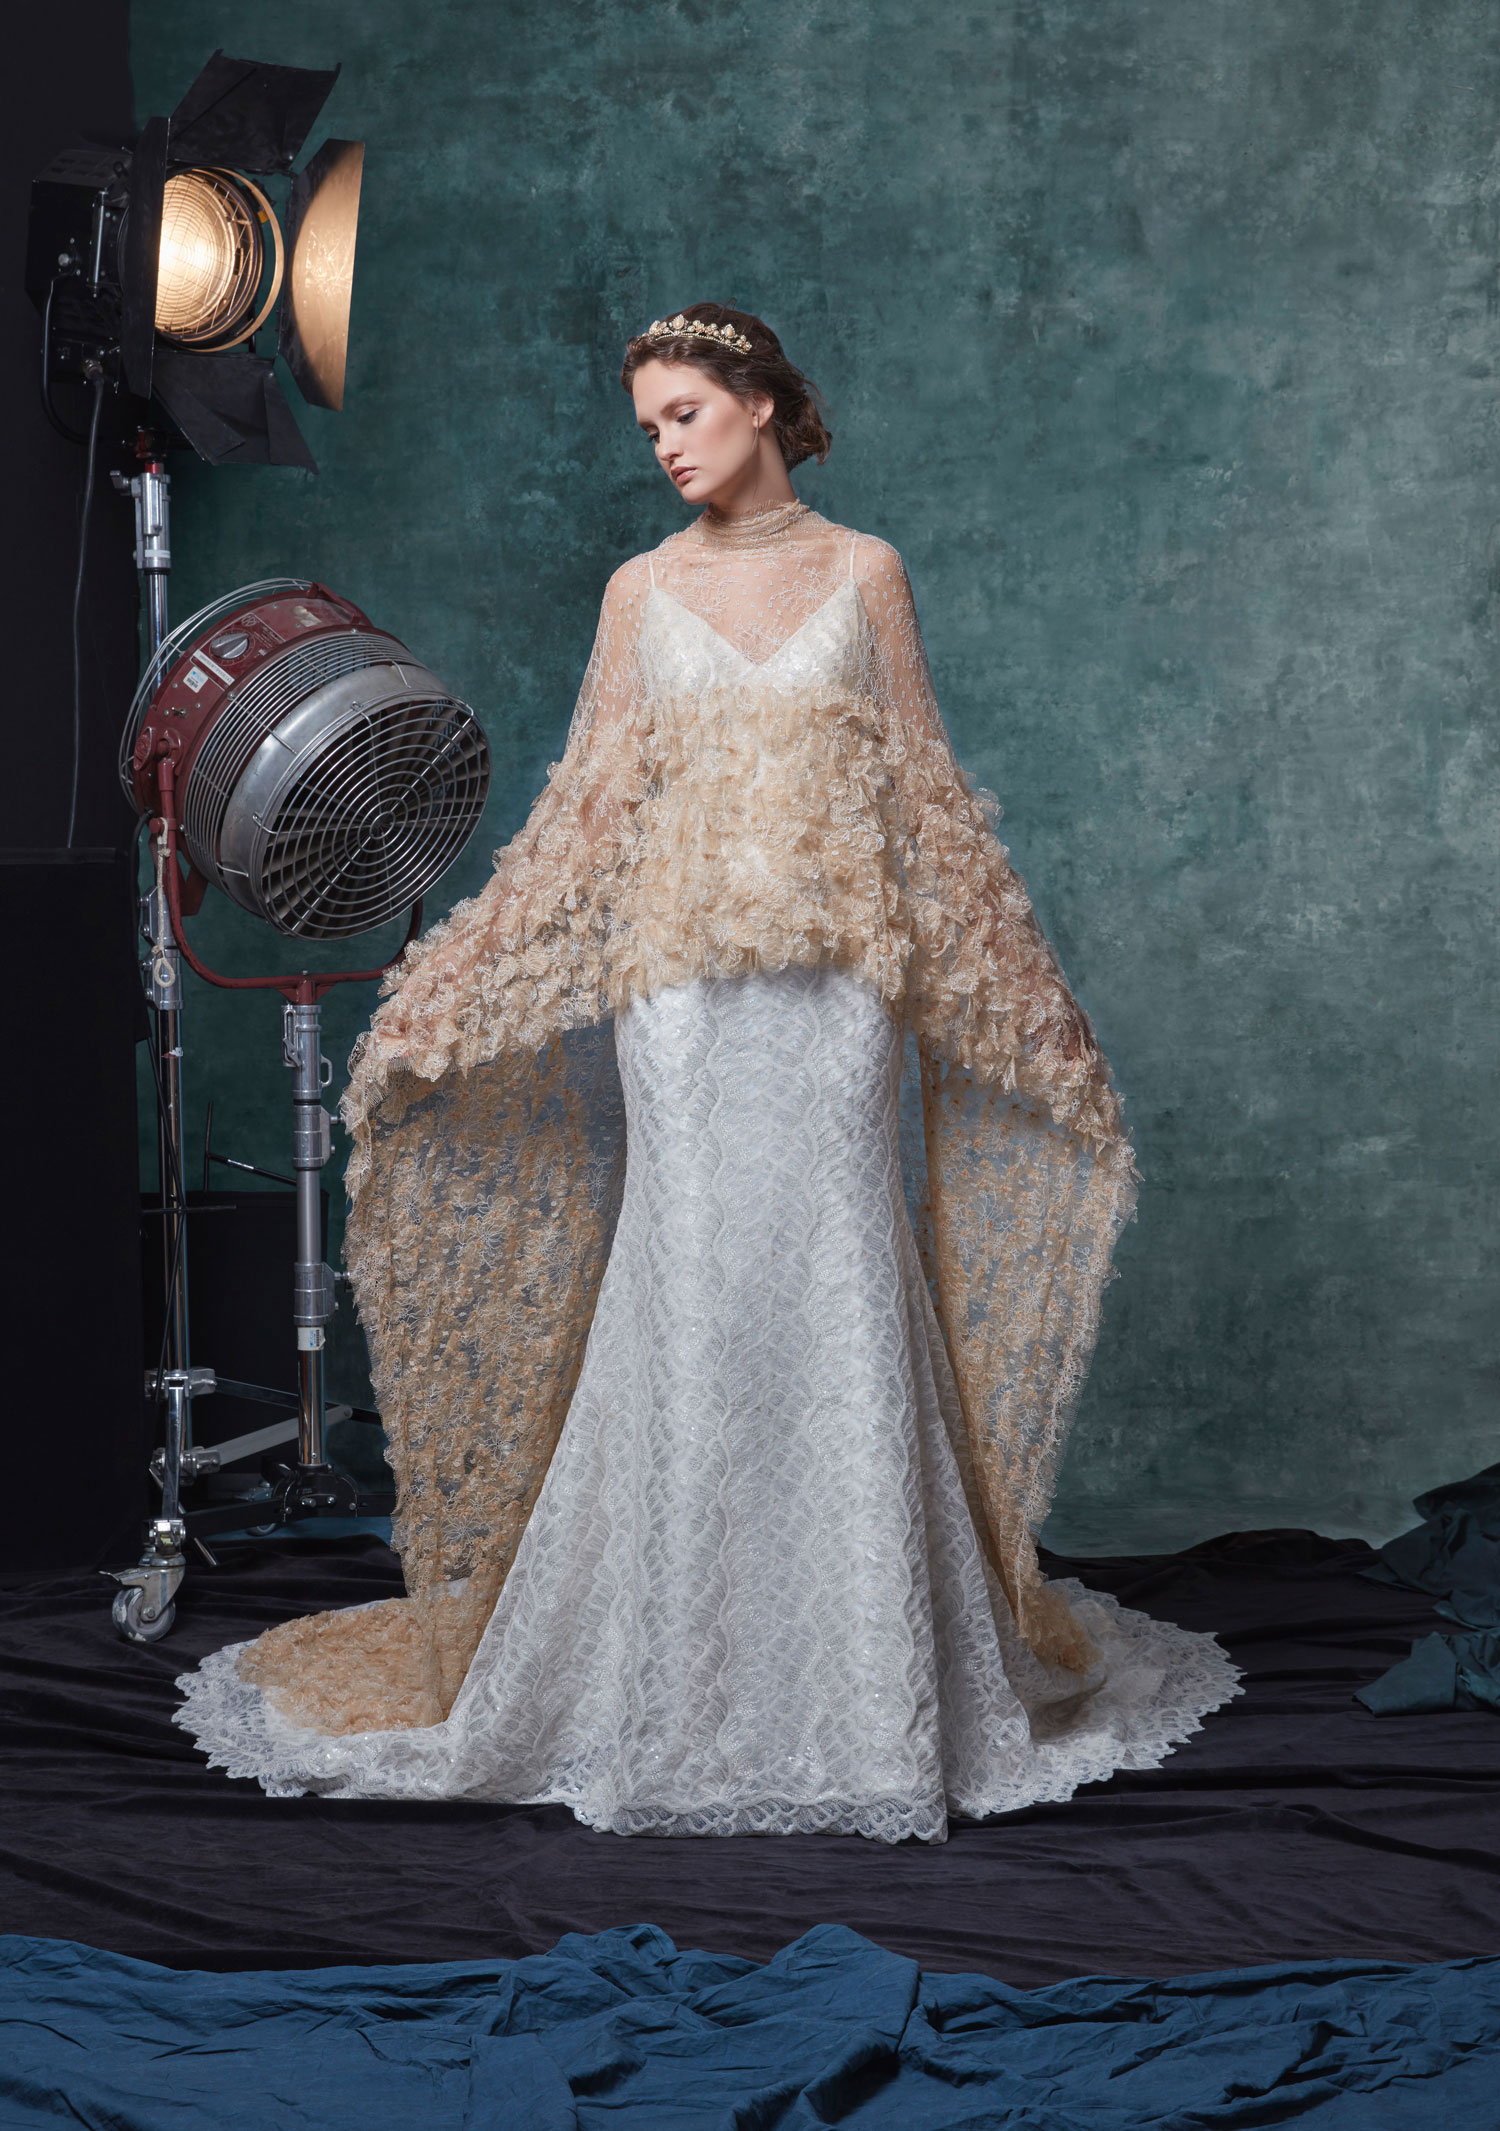 Halloween-inspired wedding dress with cape charlize by sareh nouri fall 2019